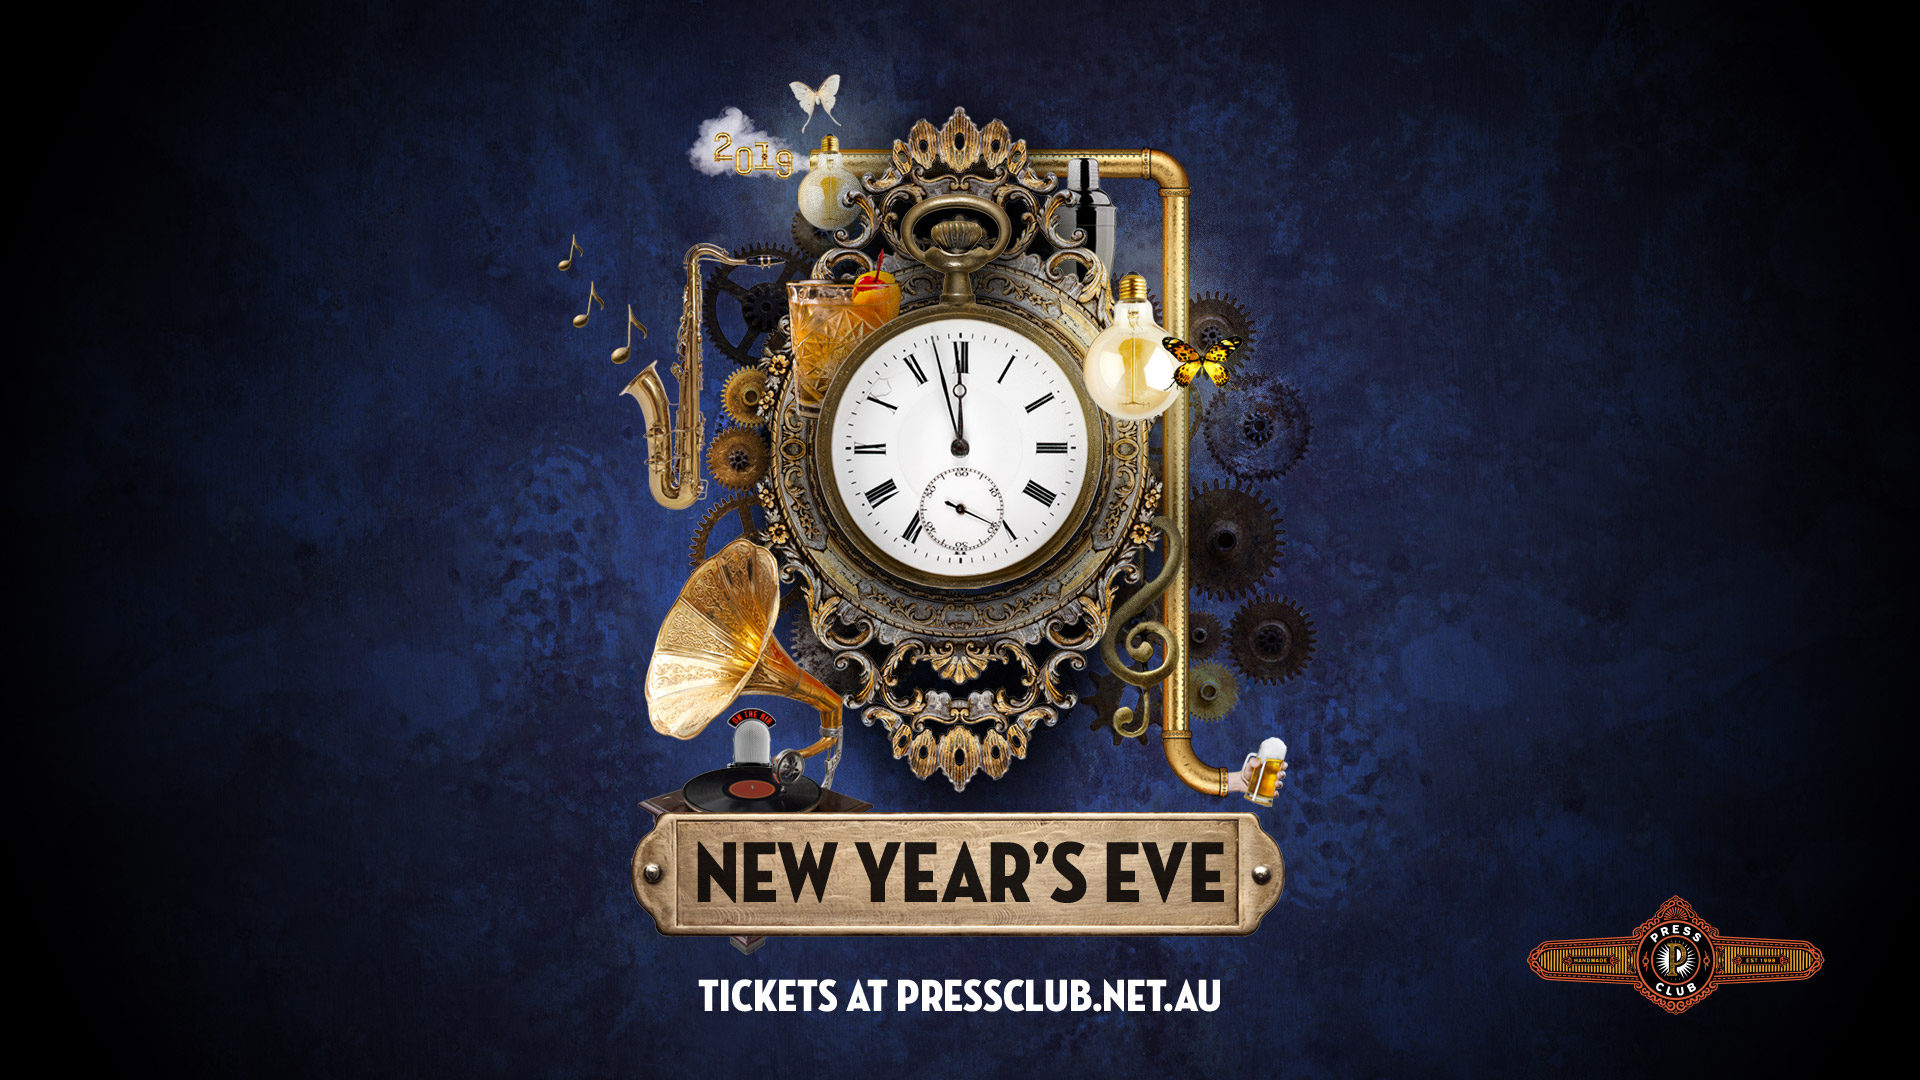 New Year's Eve at Press Club